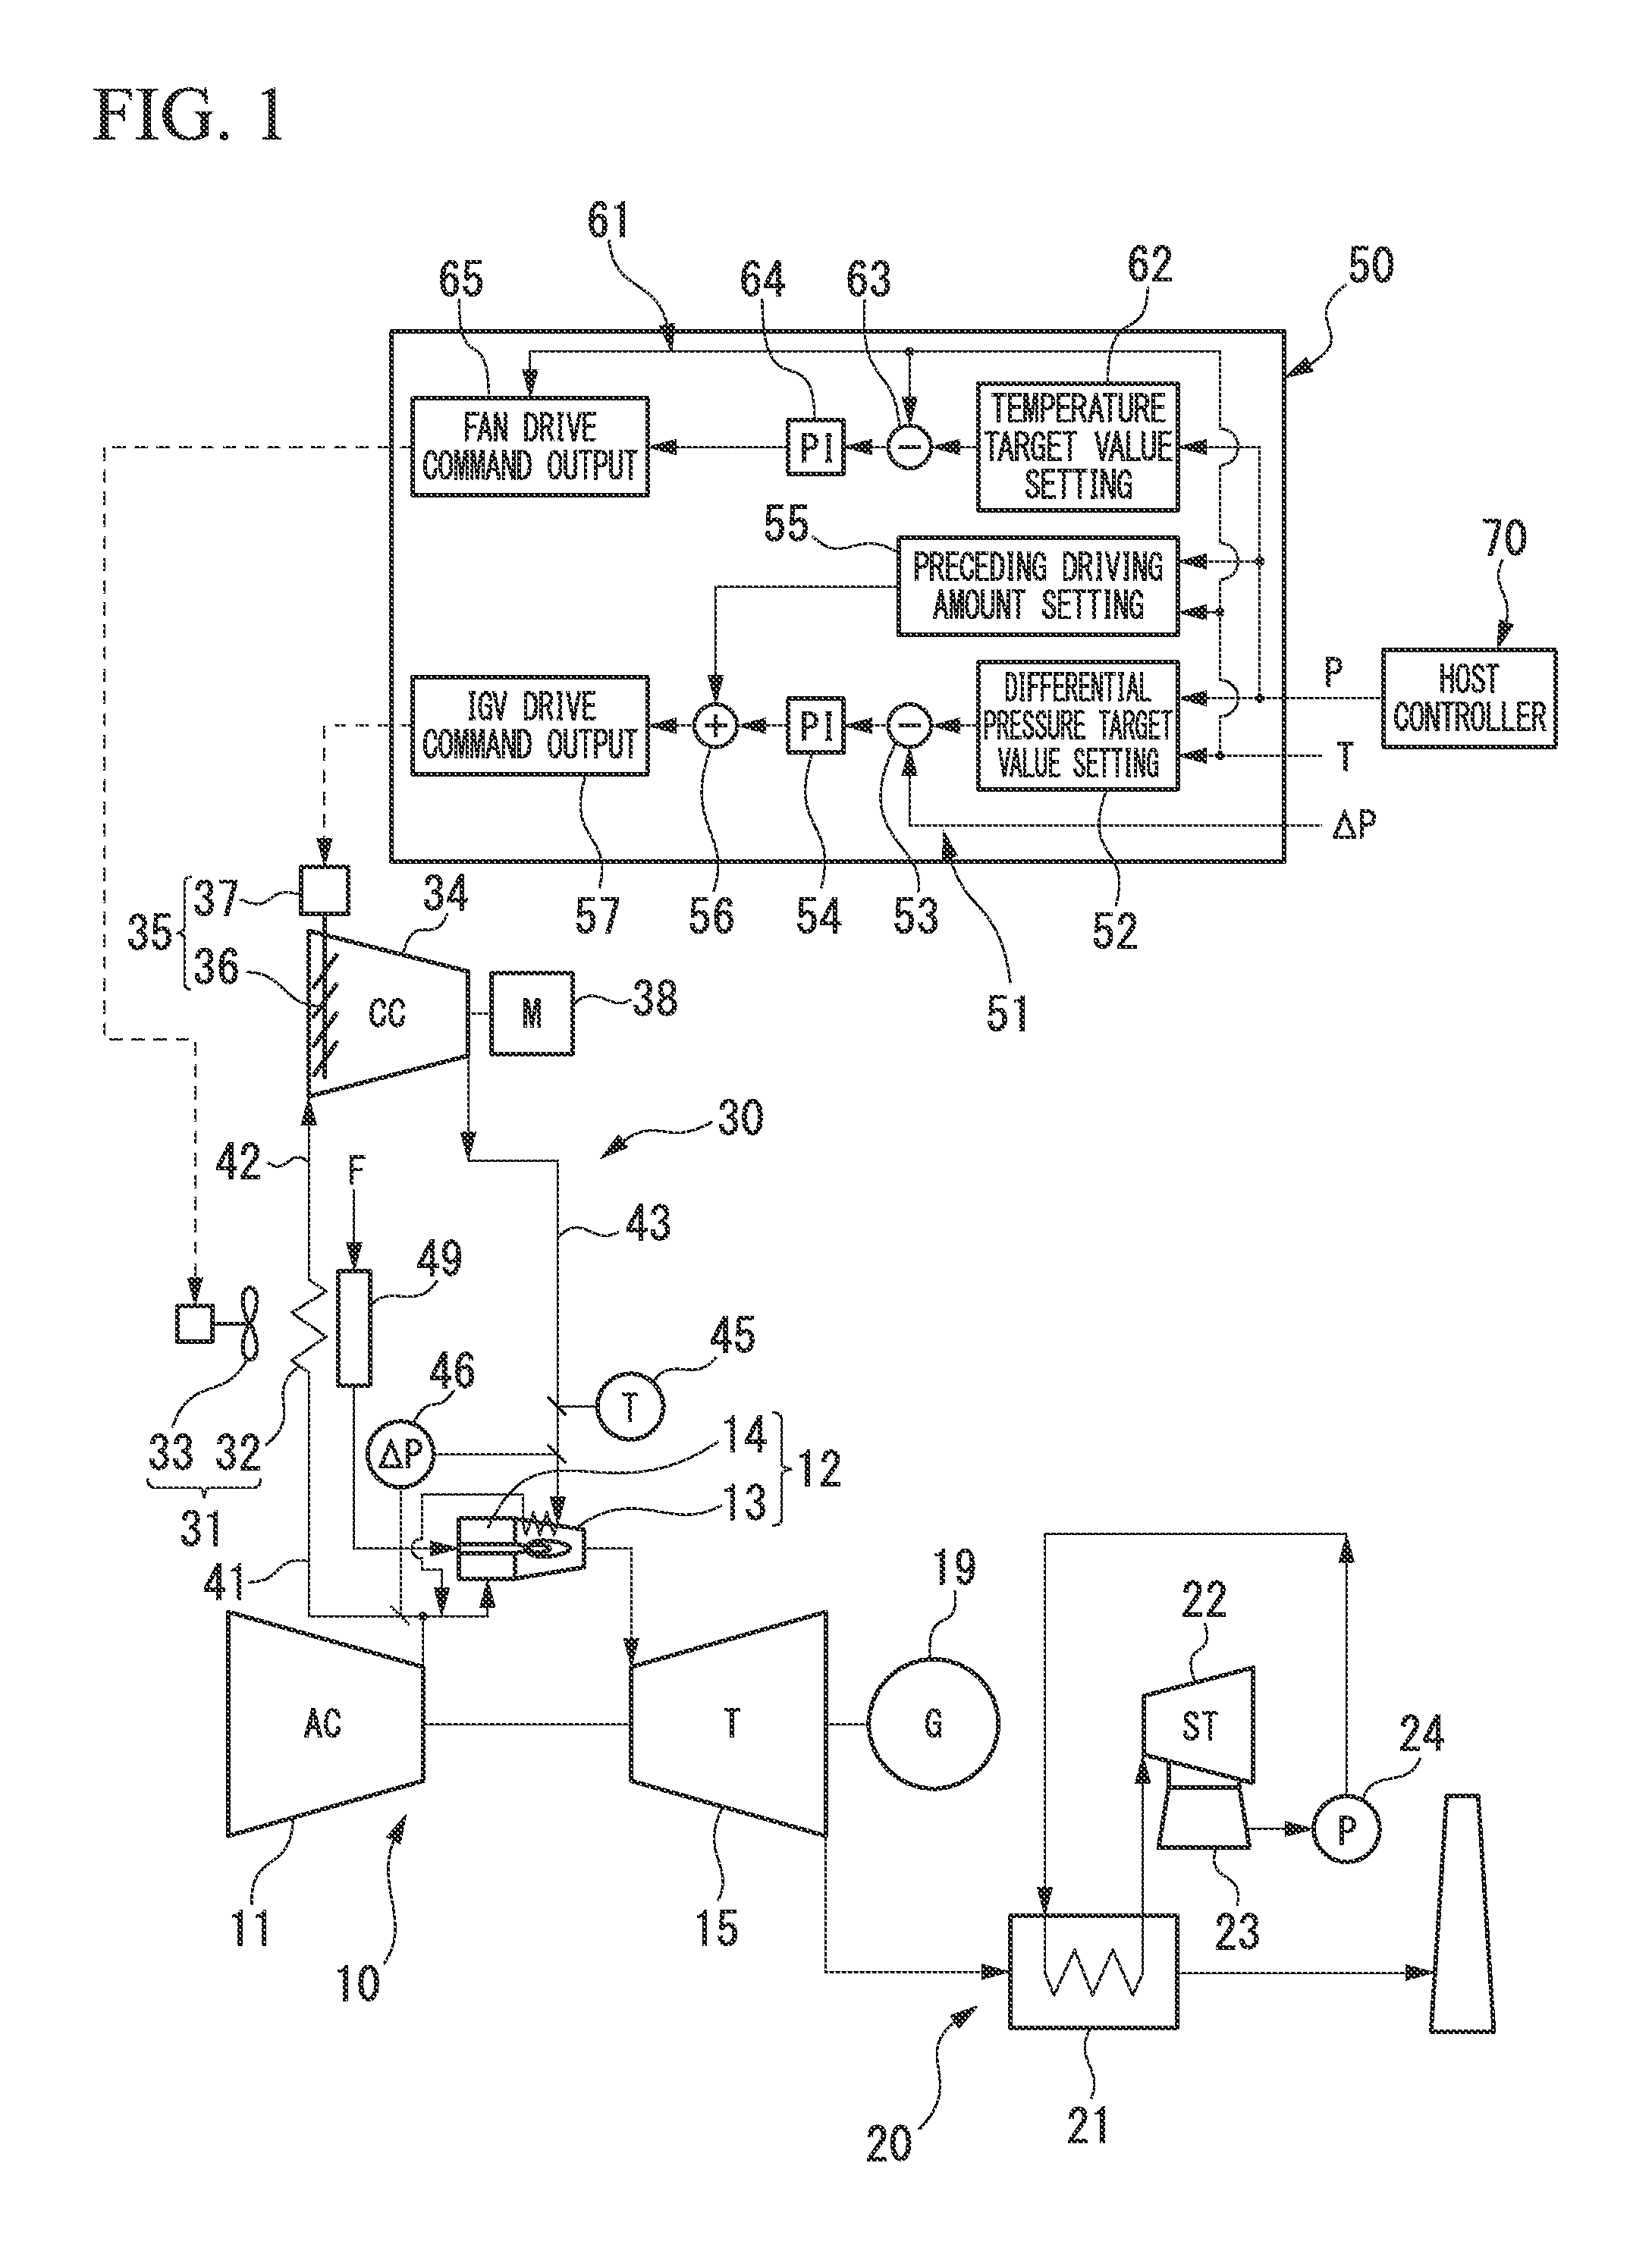 Patent US Method for controlling cooling system of